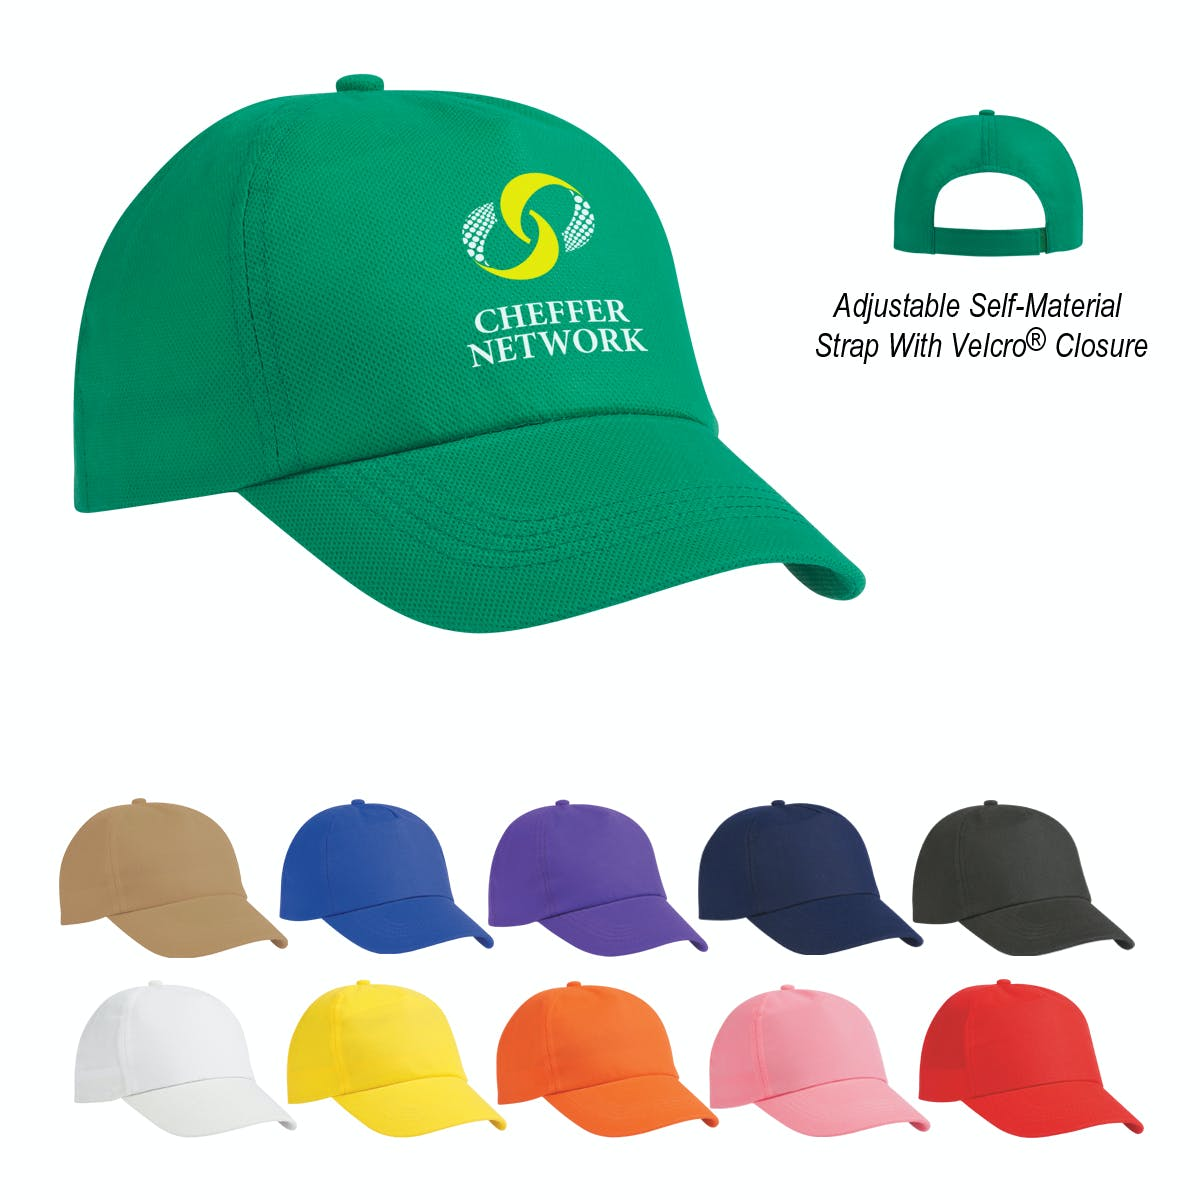 Budget Saver Cap (Item # MBFQT-ITMJK) Baseball cap sold by InkEasy